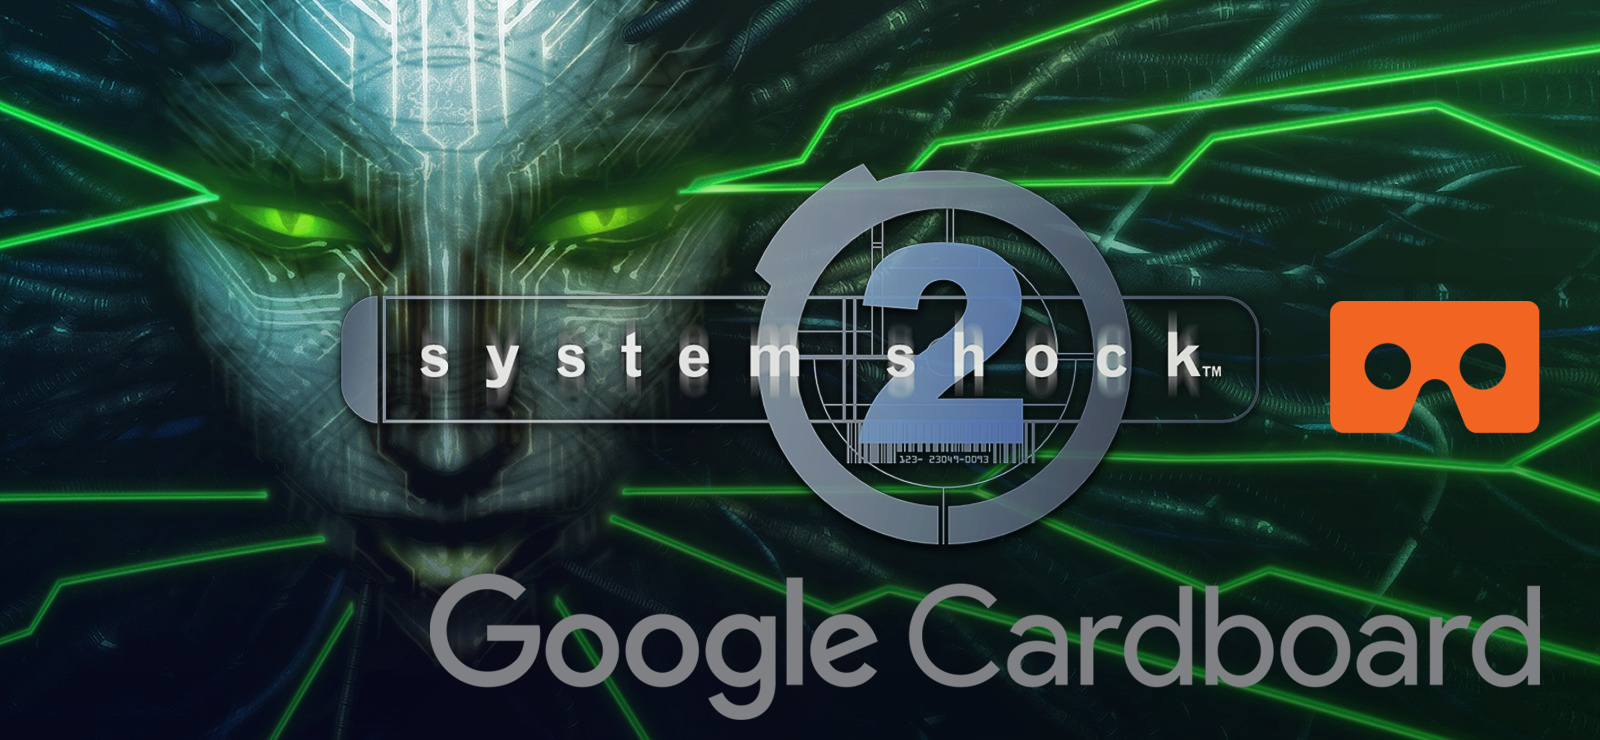 System Shock 2 in Google Cardboard VR